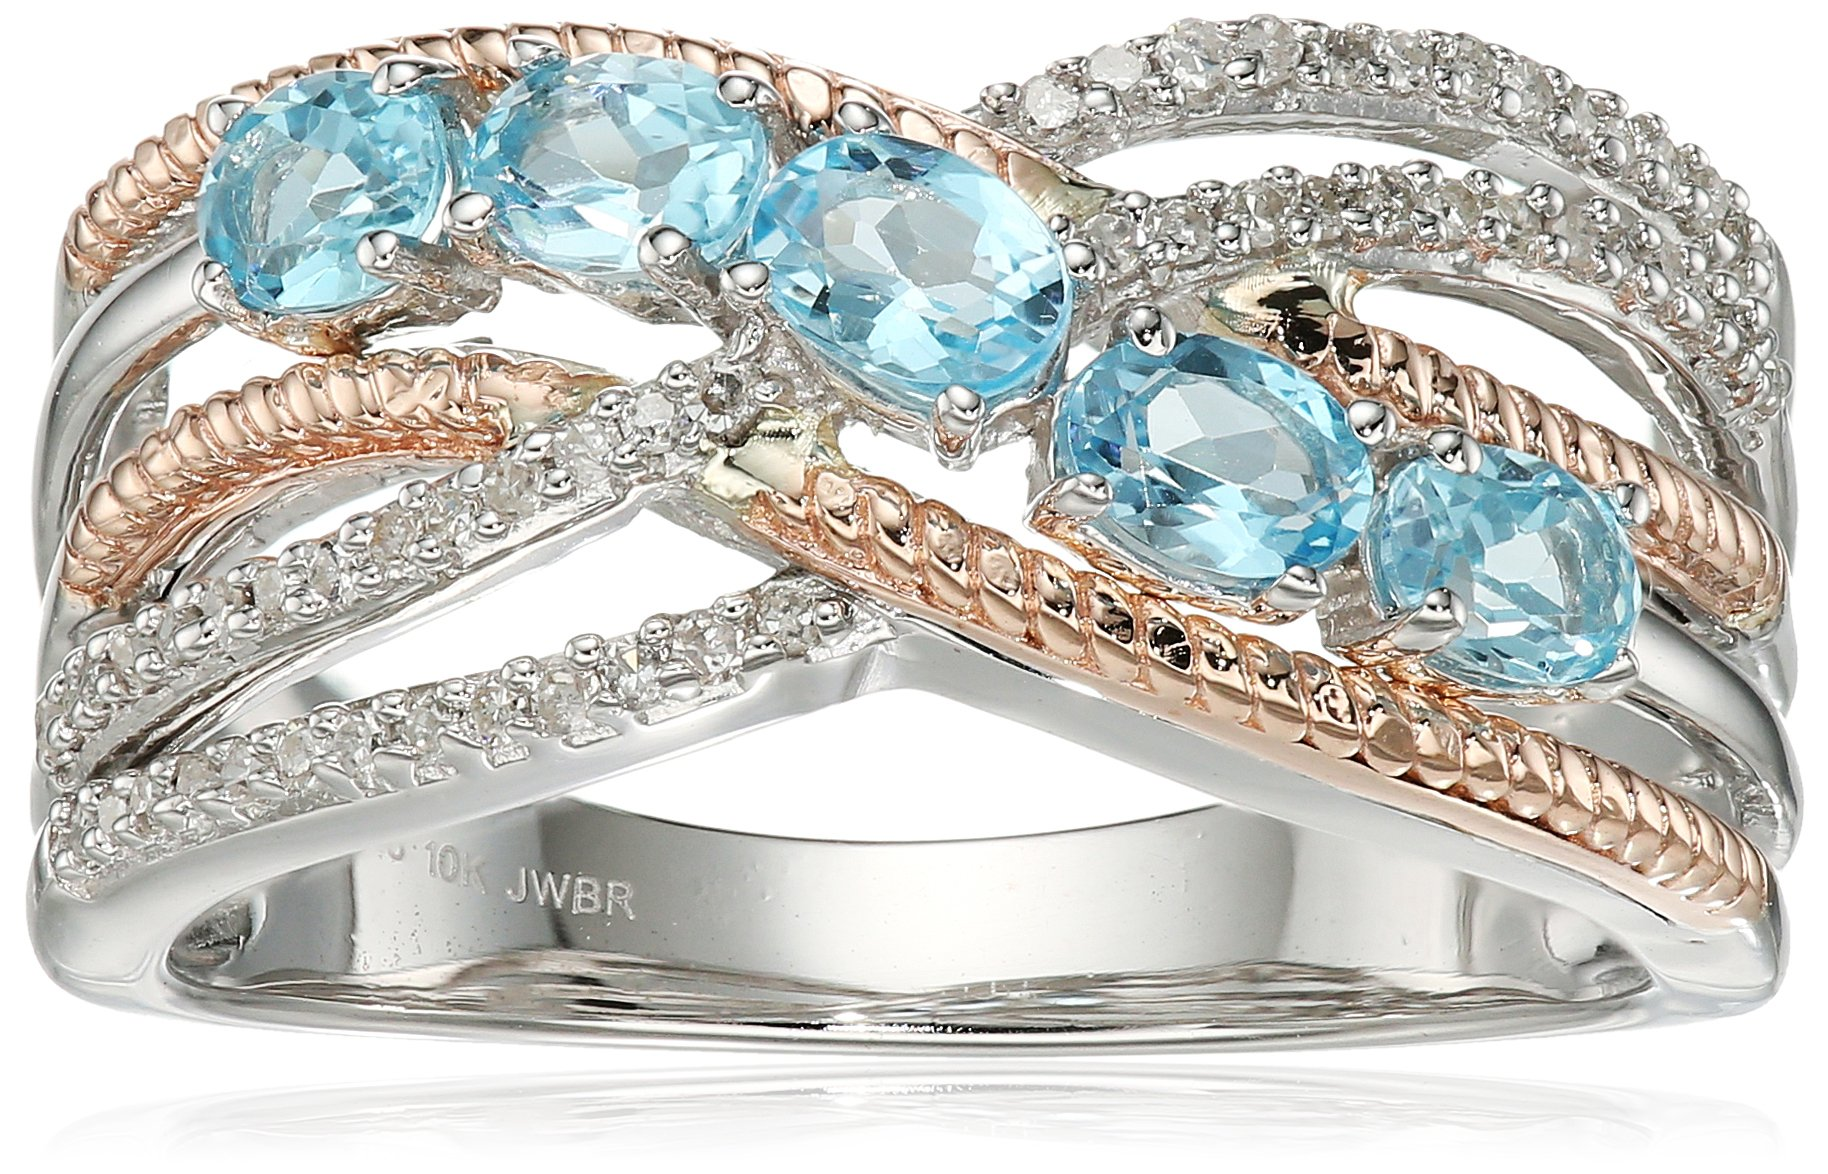 Sterling Silver and 10K Pink Gold Swiss Blue Topaz Oval Shape and White Diamond Fashion Ring, Size 8